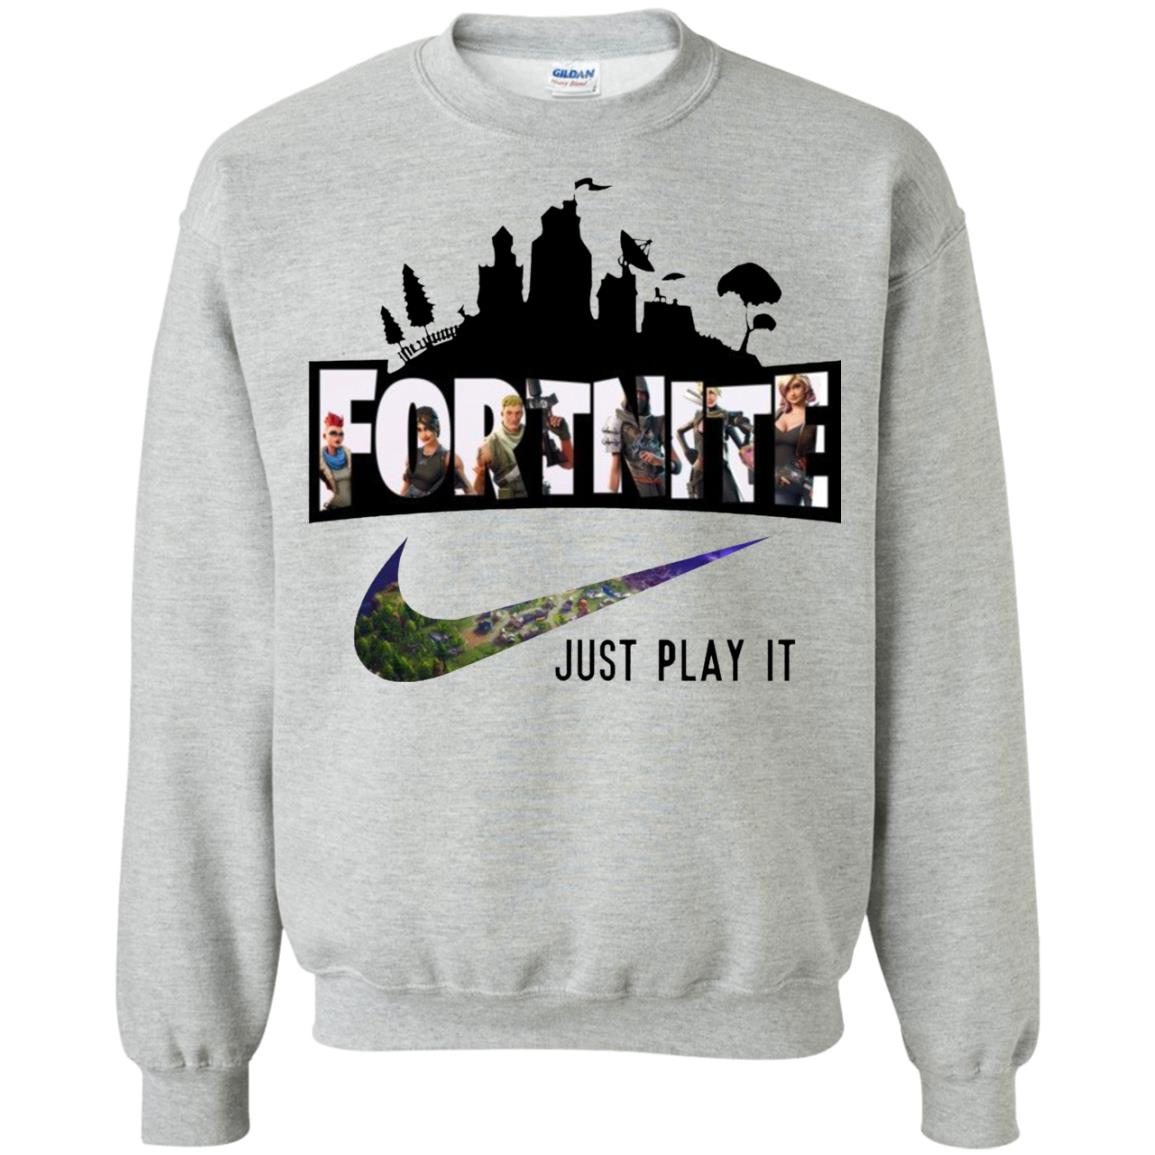 Nike Fortnite Just Play It Sweatshirt Shop Nike X Fortnite